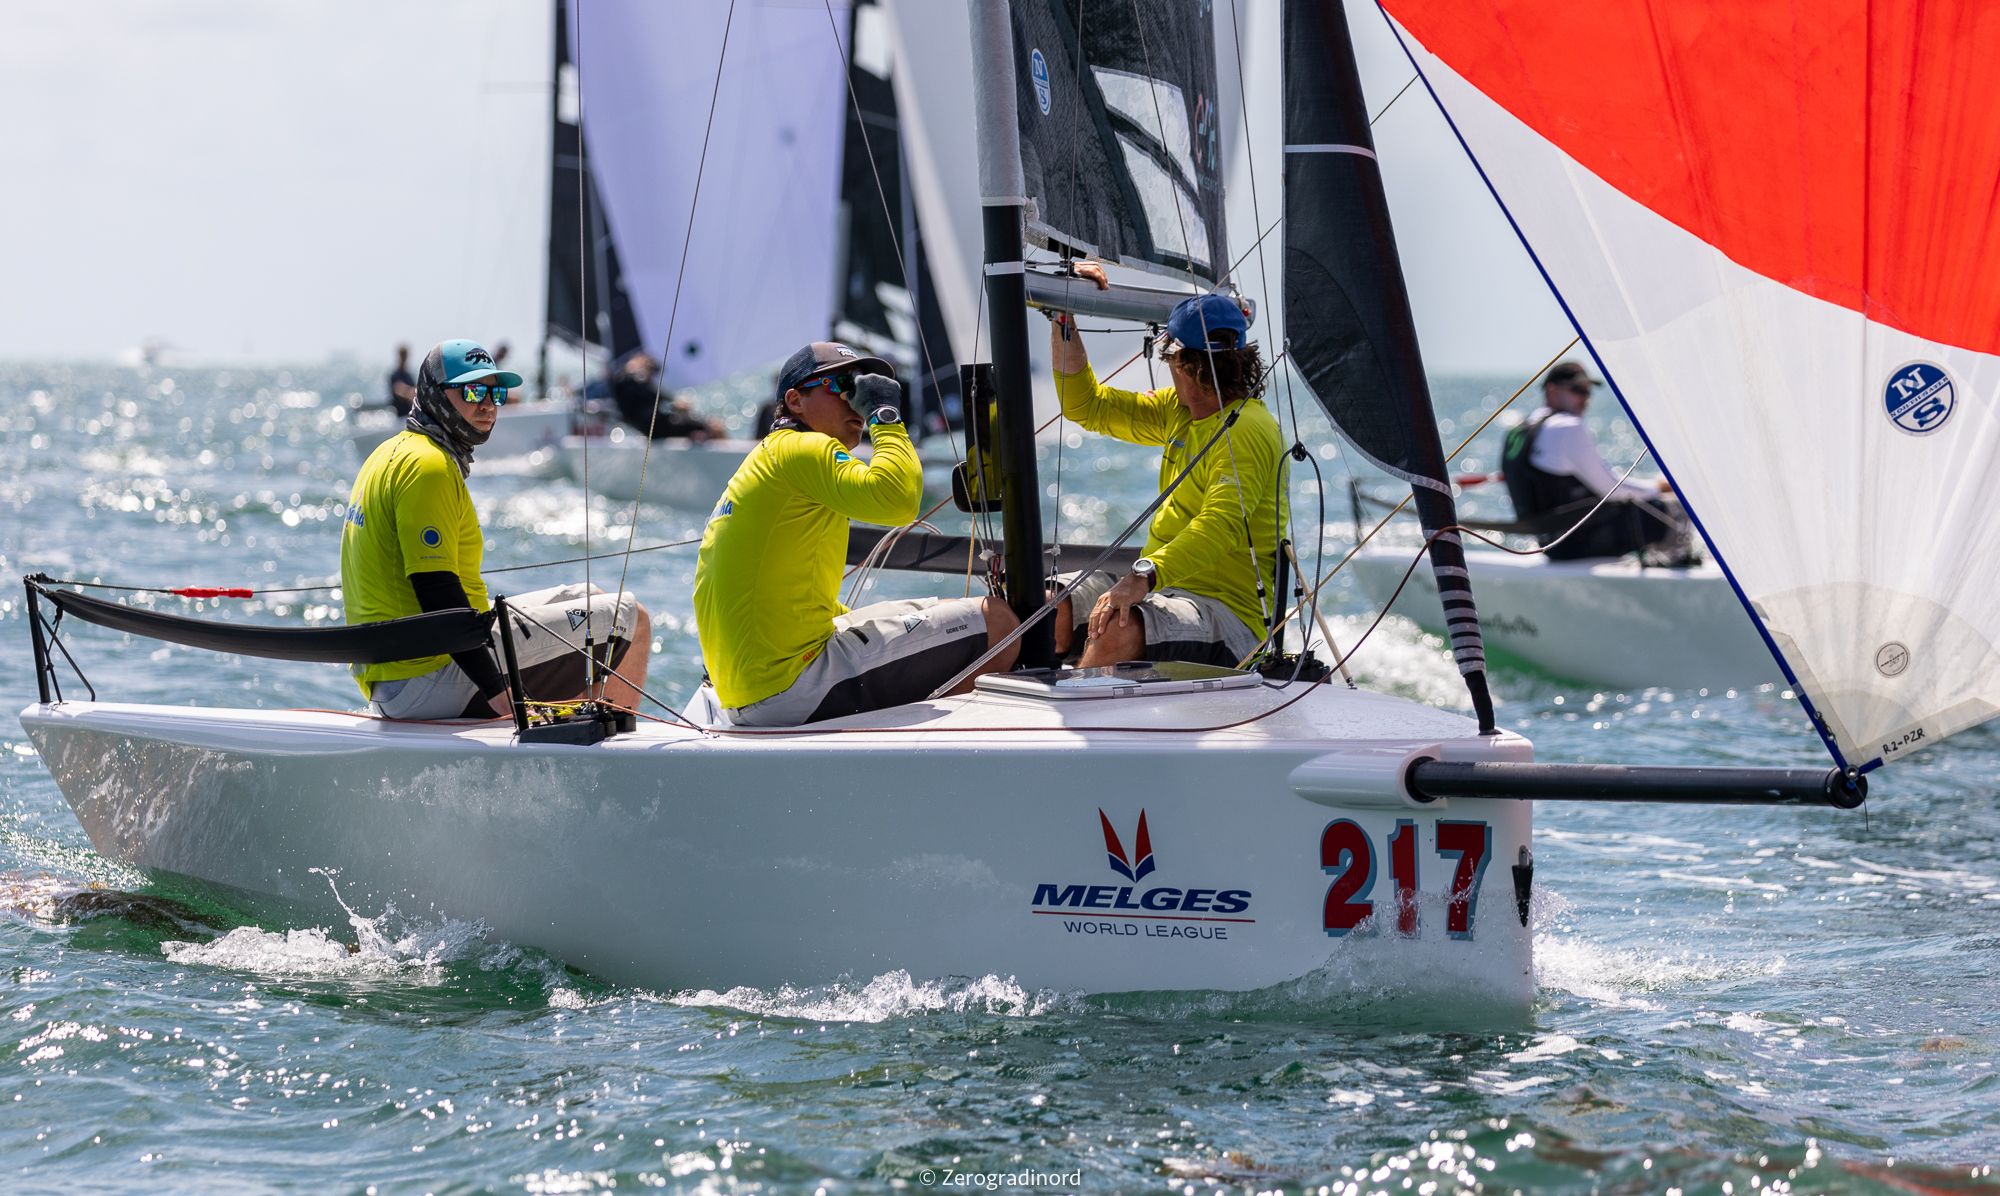 Melges20_060419_low-28.jpg